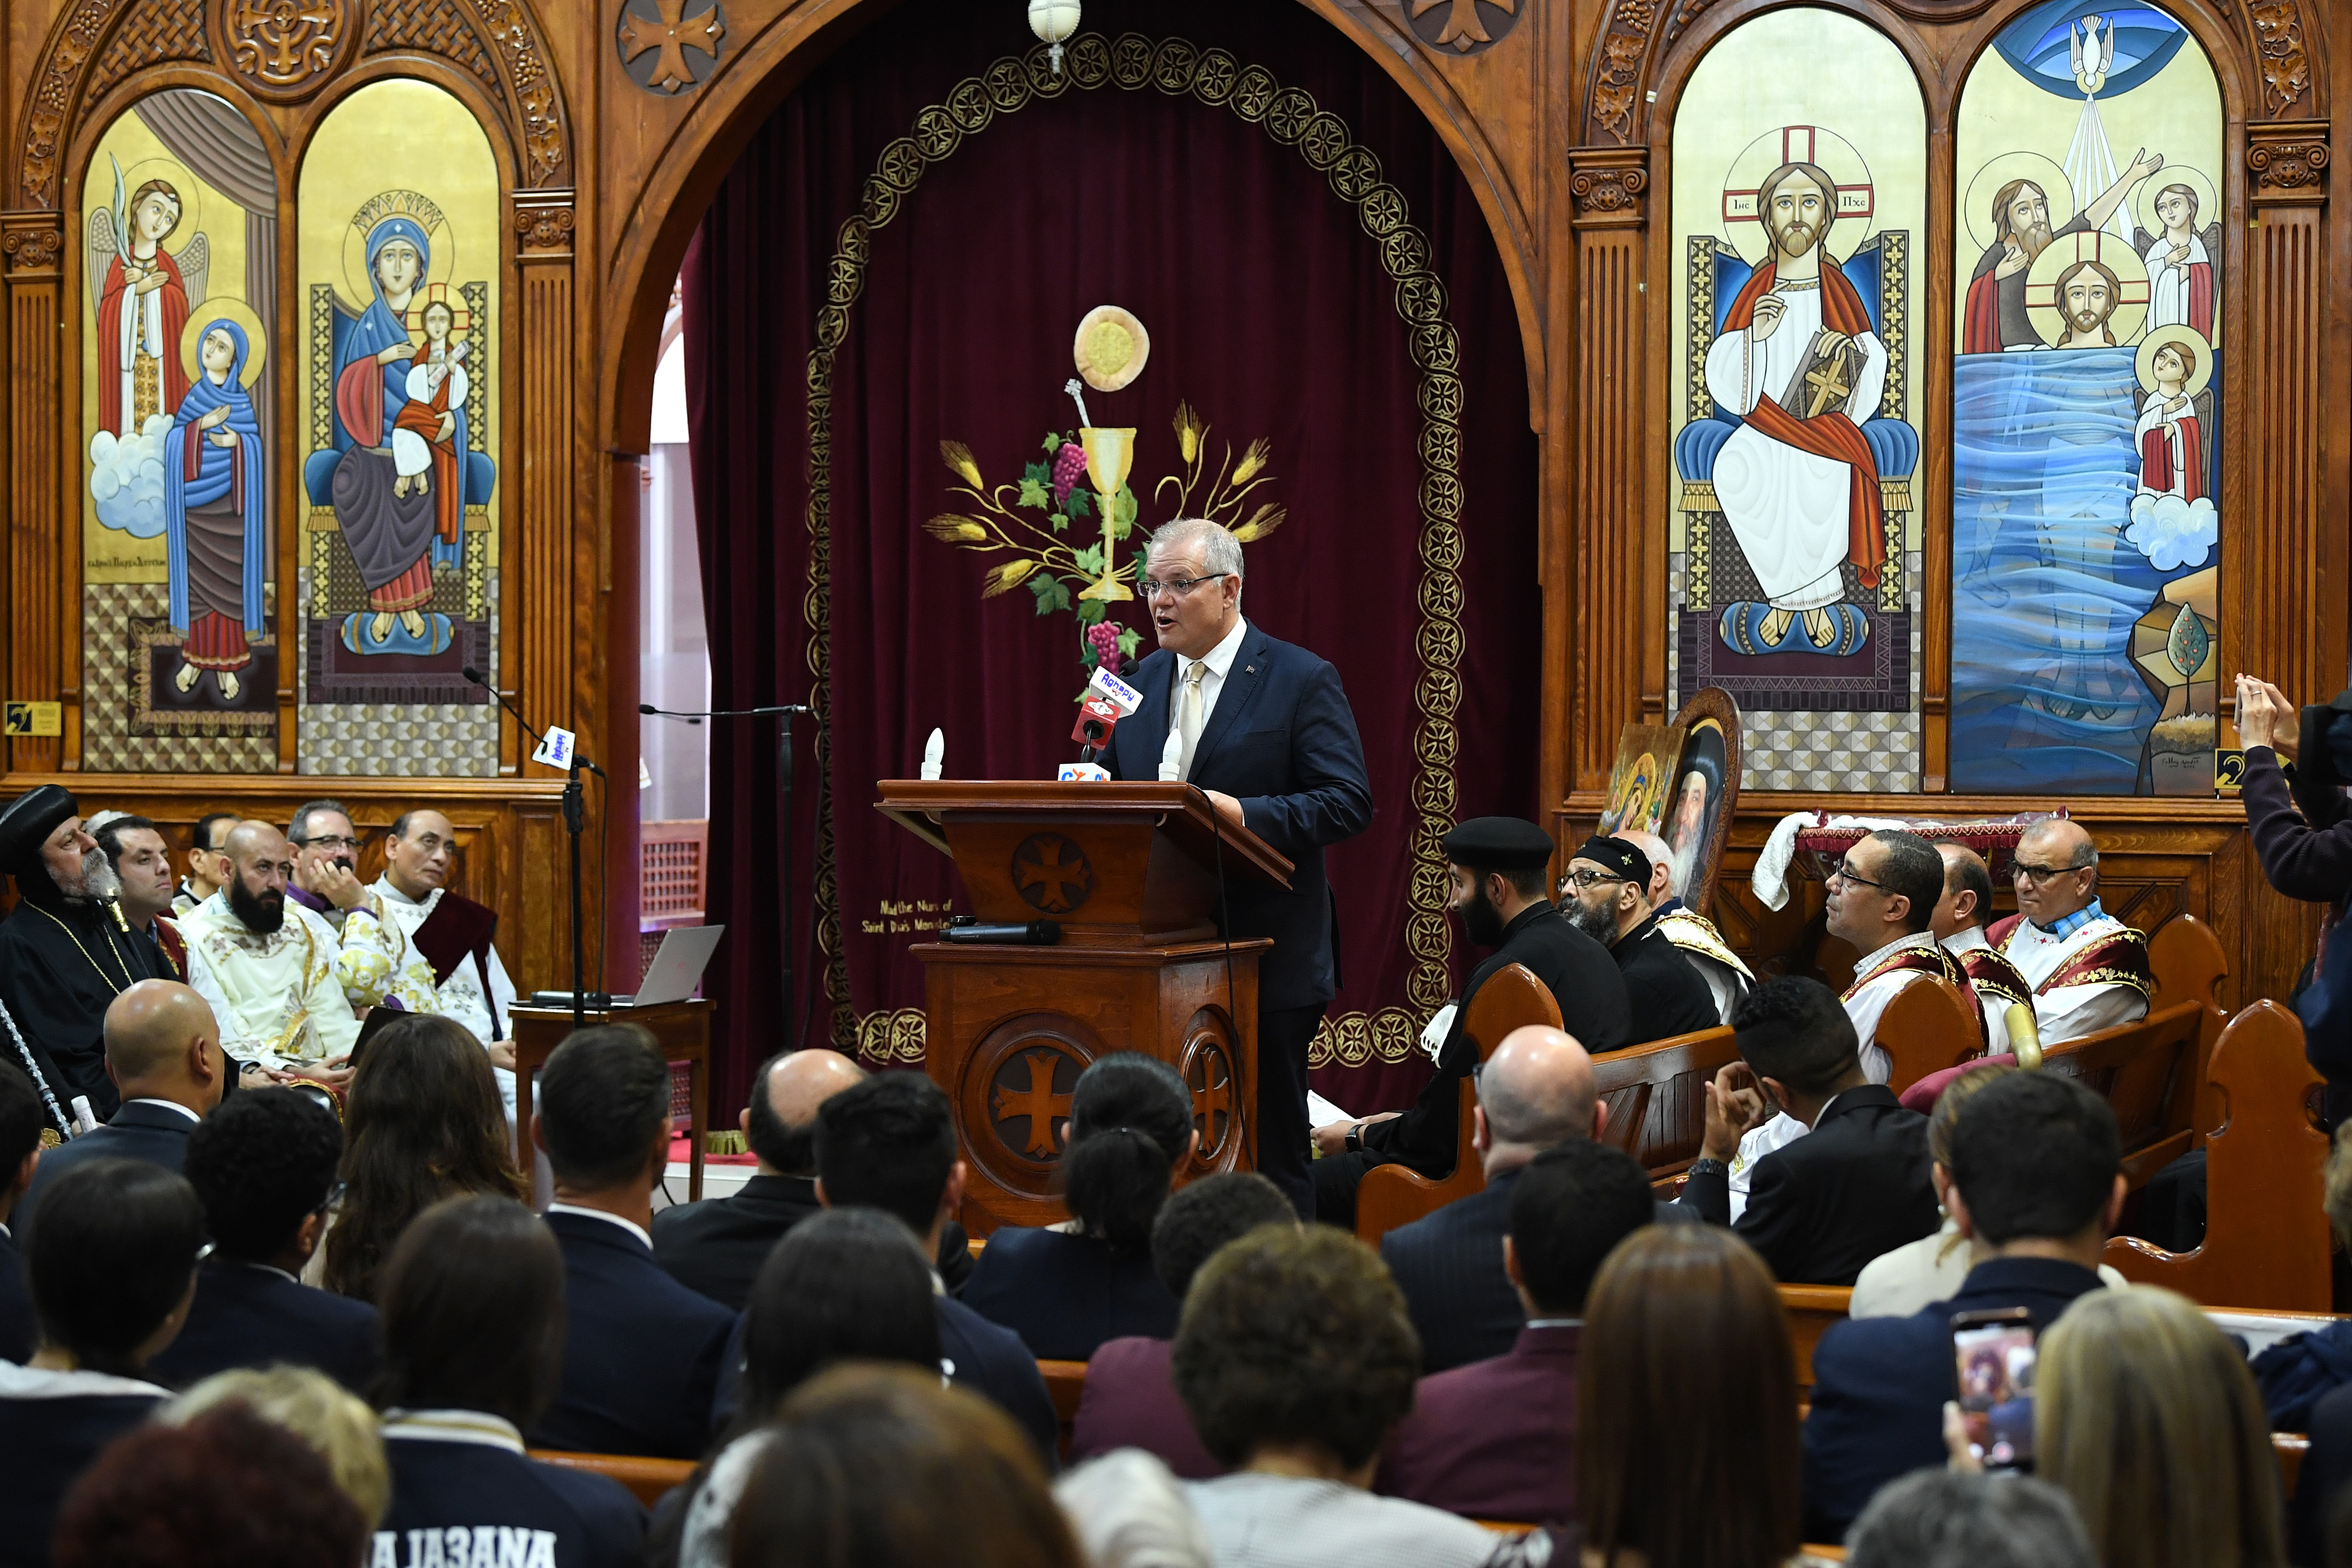 Prime Minister Scott Morrison speaks during Mass at St Mark Coptic Orthodox Church at Arncliffe in Sydney, Sunday, March 17, 2019. (AAP Image/Joel Carrett) NO ARCHIVING